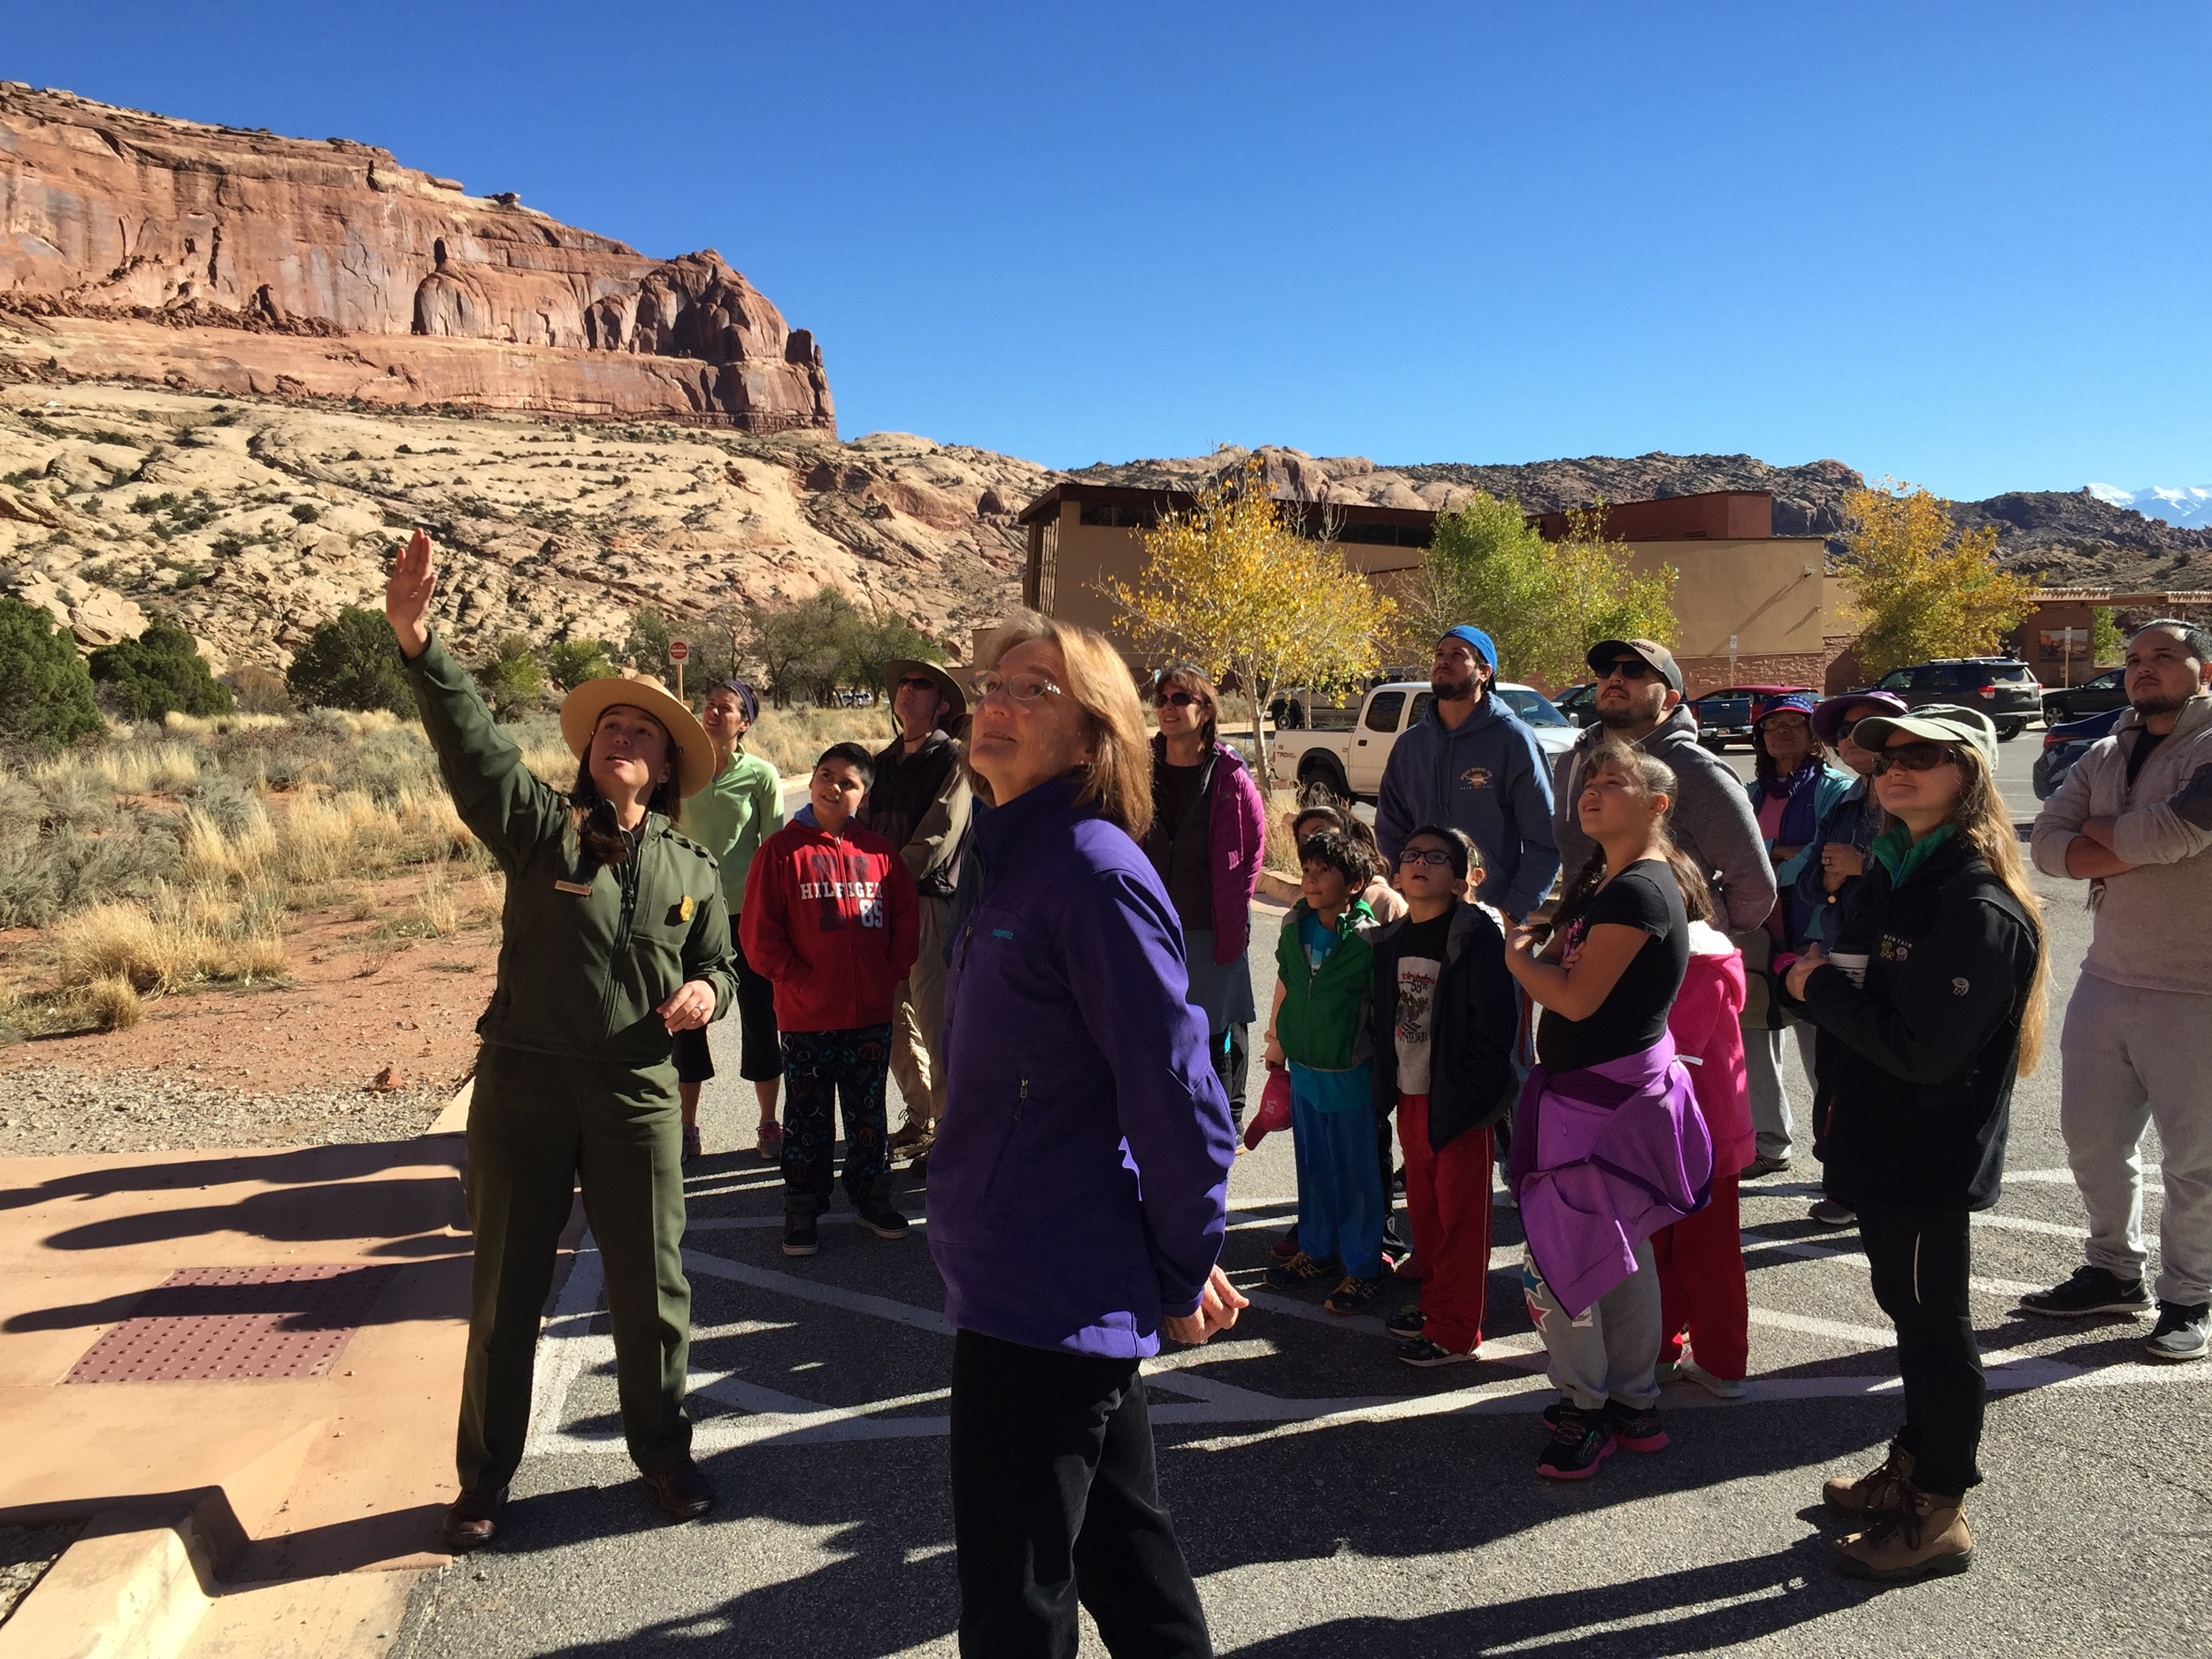 Learning about Hispanic heritage in arches national park, Utah